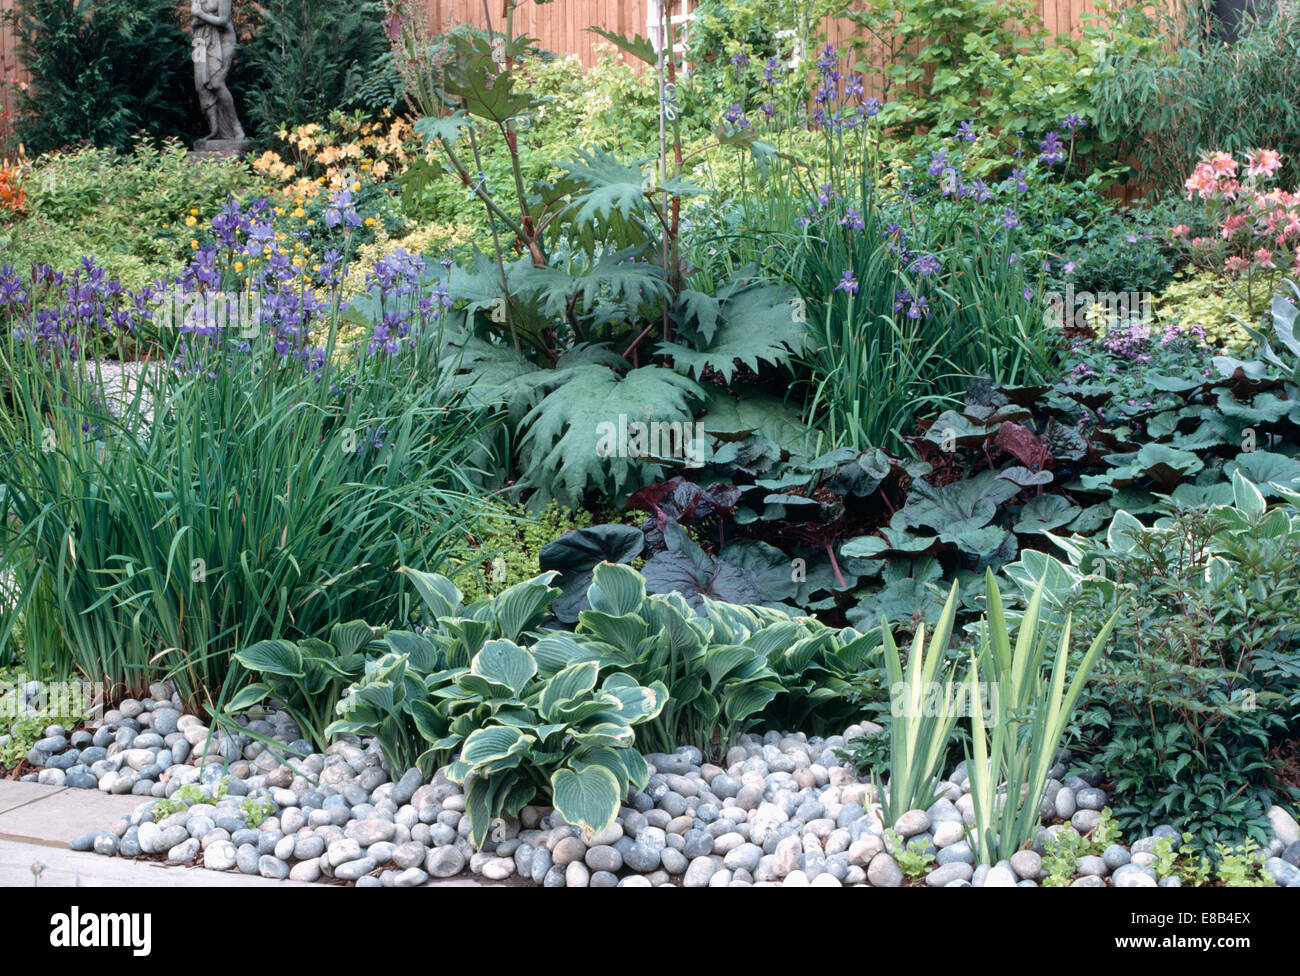 Blue Iris And Hosta Mulched With Pebbles In Well Stocked